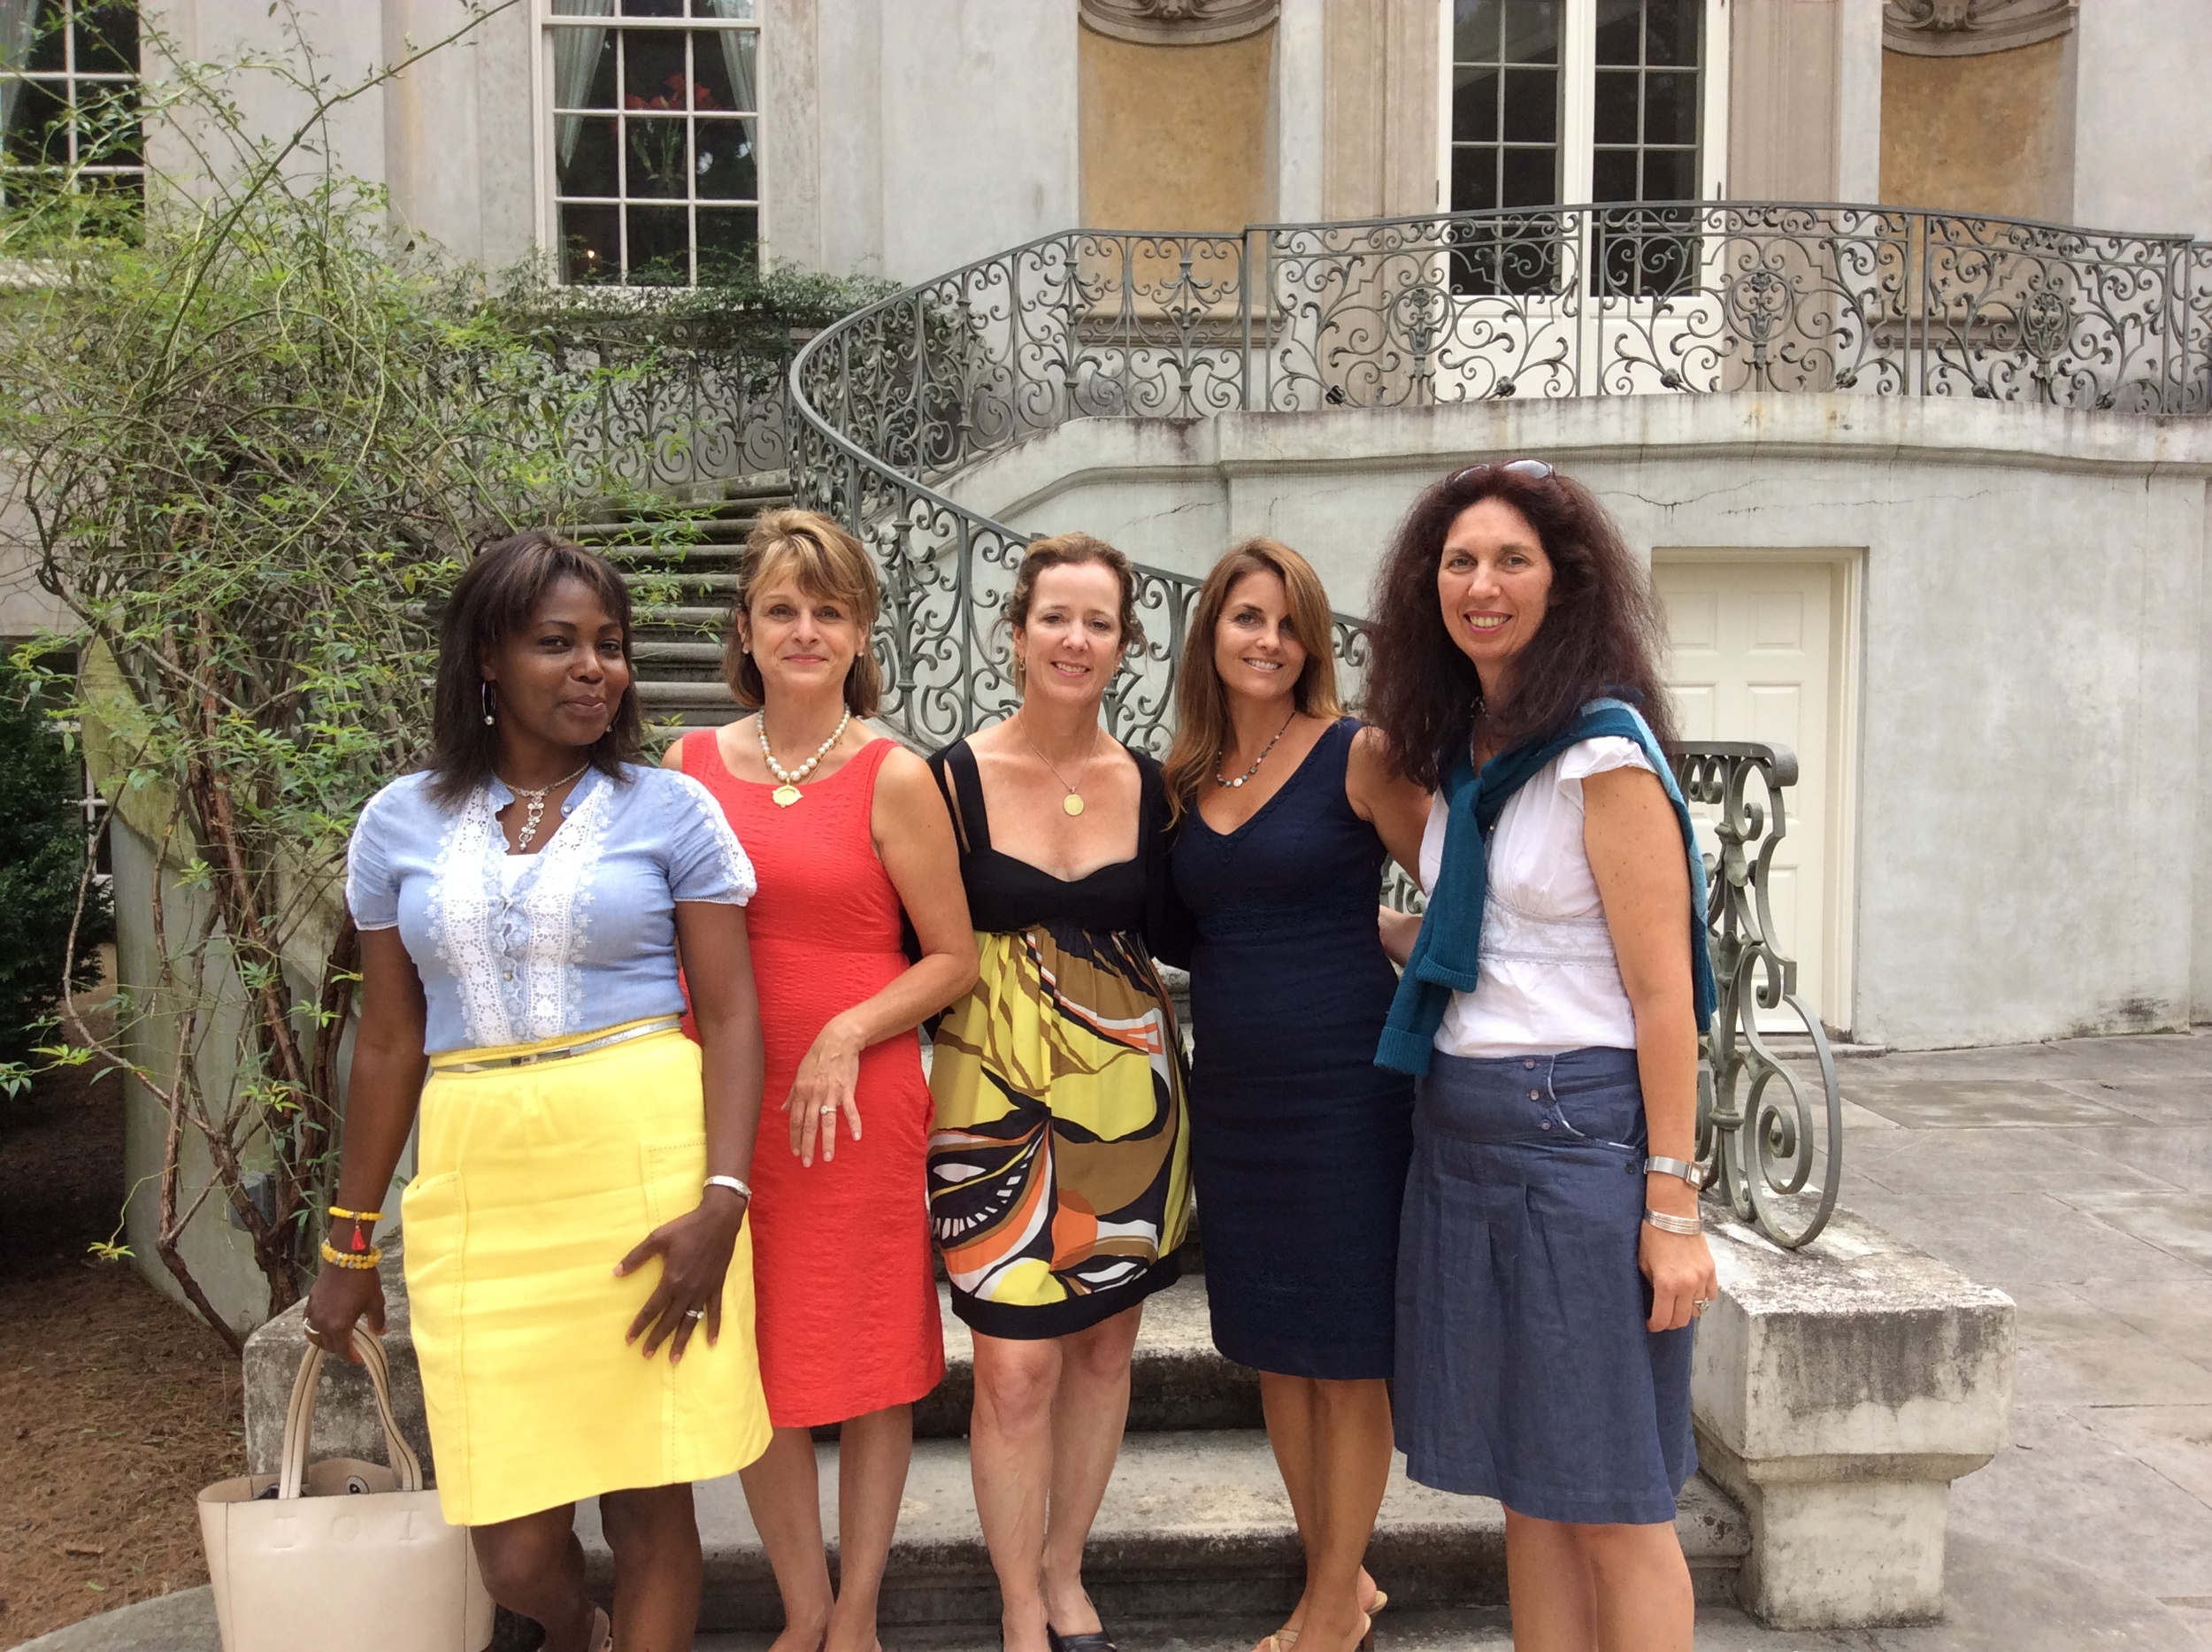 Touring this beautiful chateau with the spouses of the Distinguished Clubs of The World tour 2014